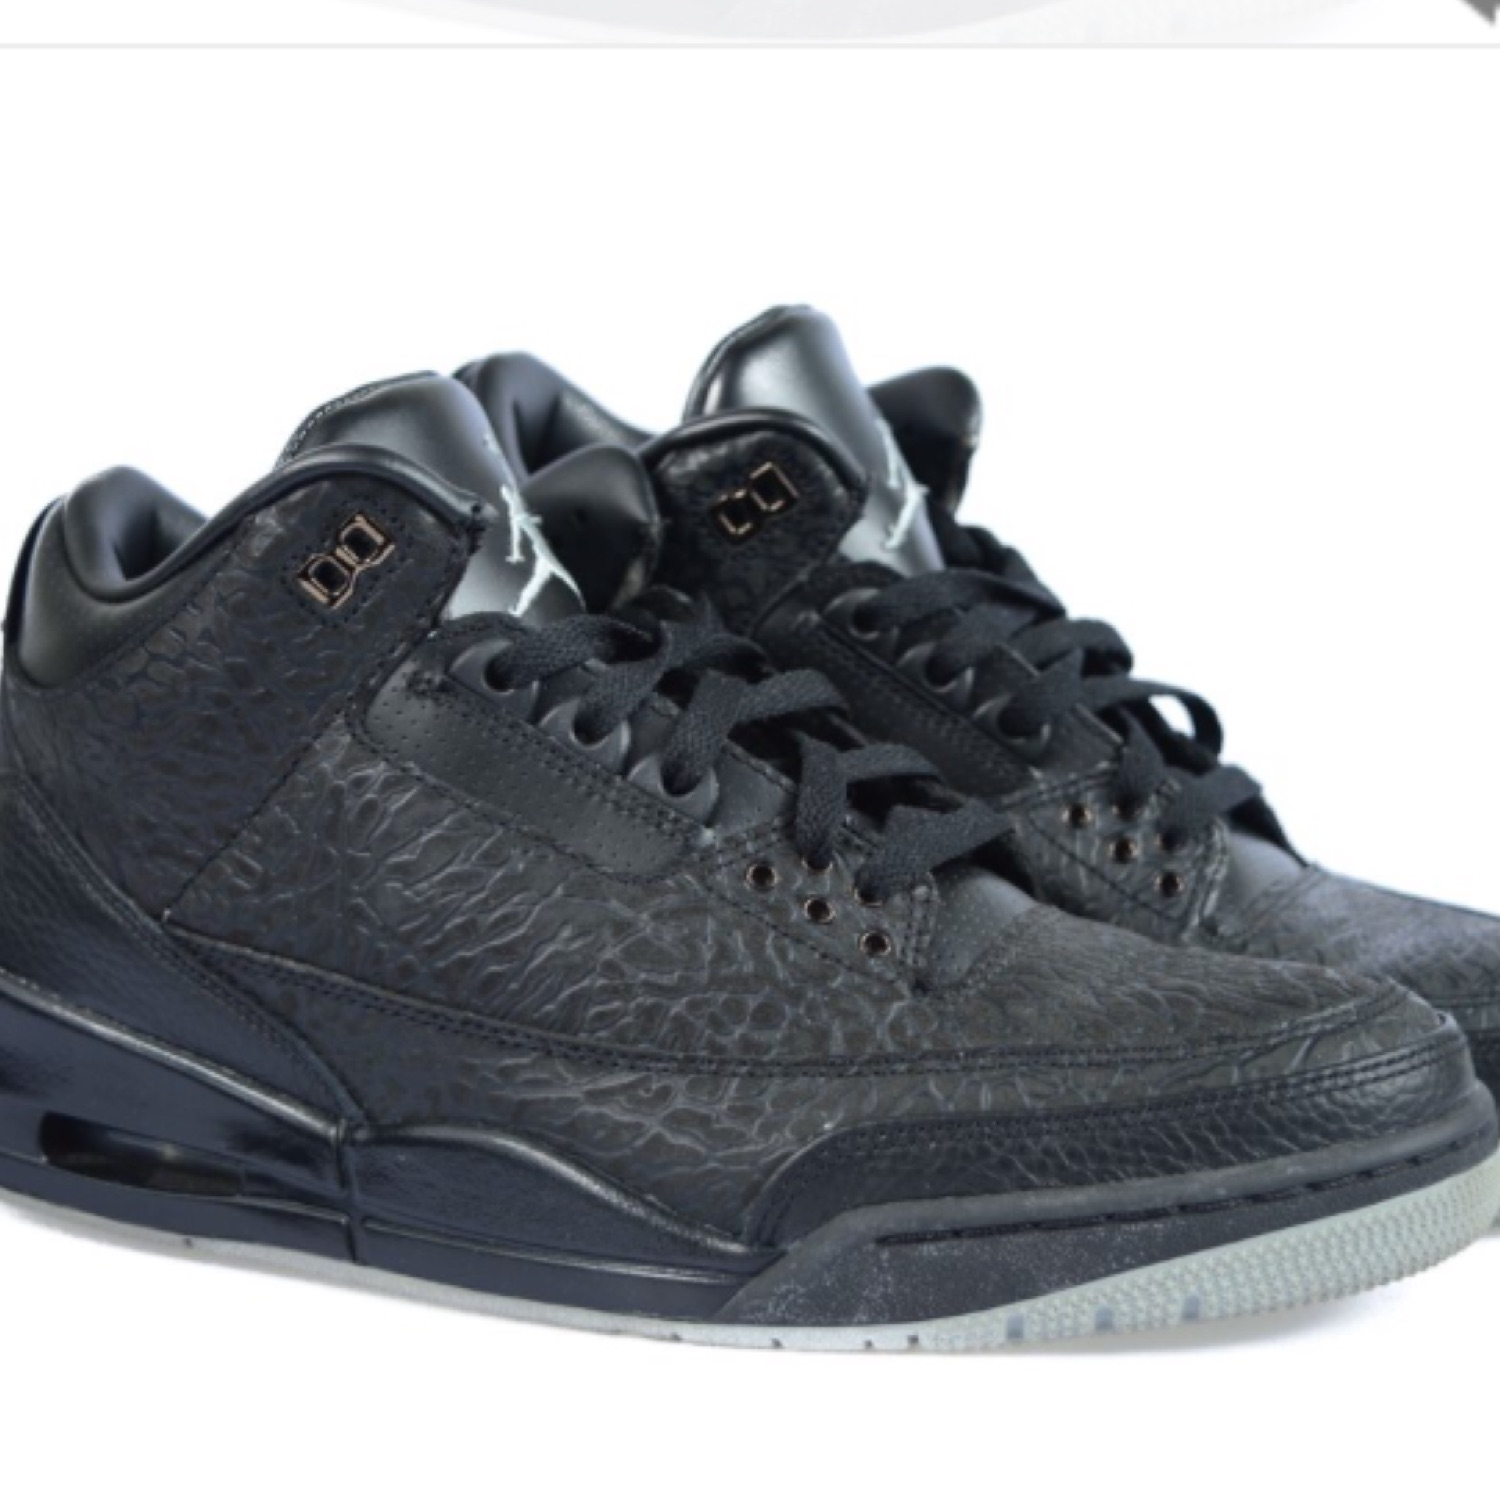 womens Air jordan 3 Nike Air Jordan 3 Retro